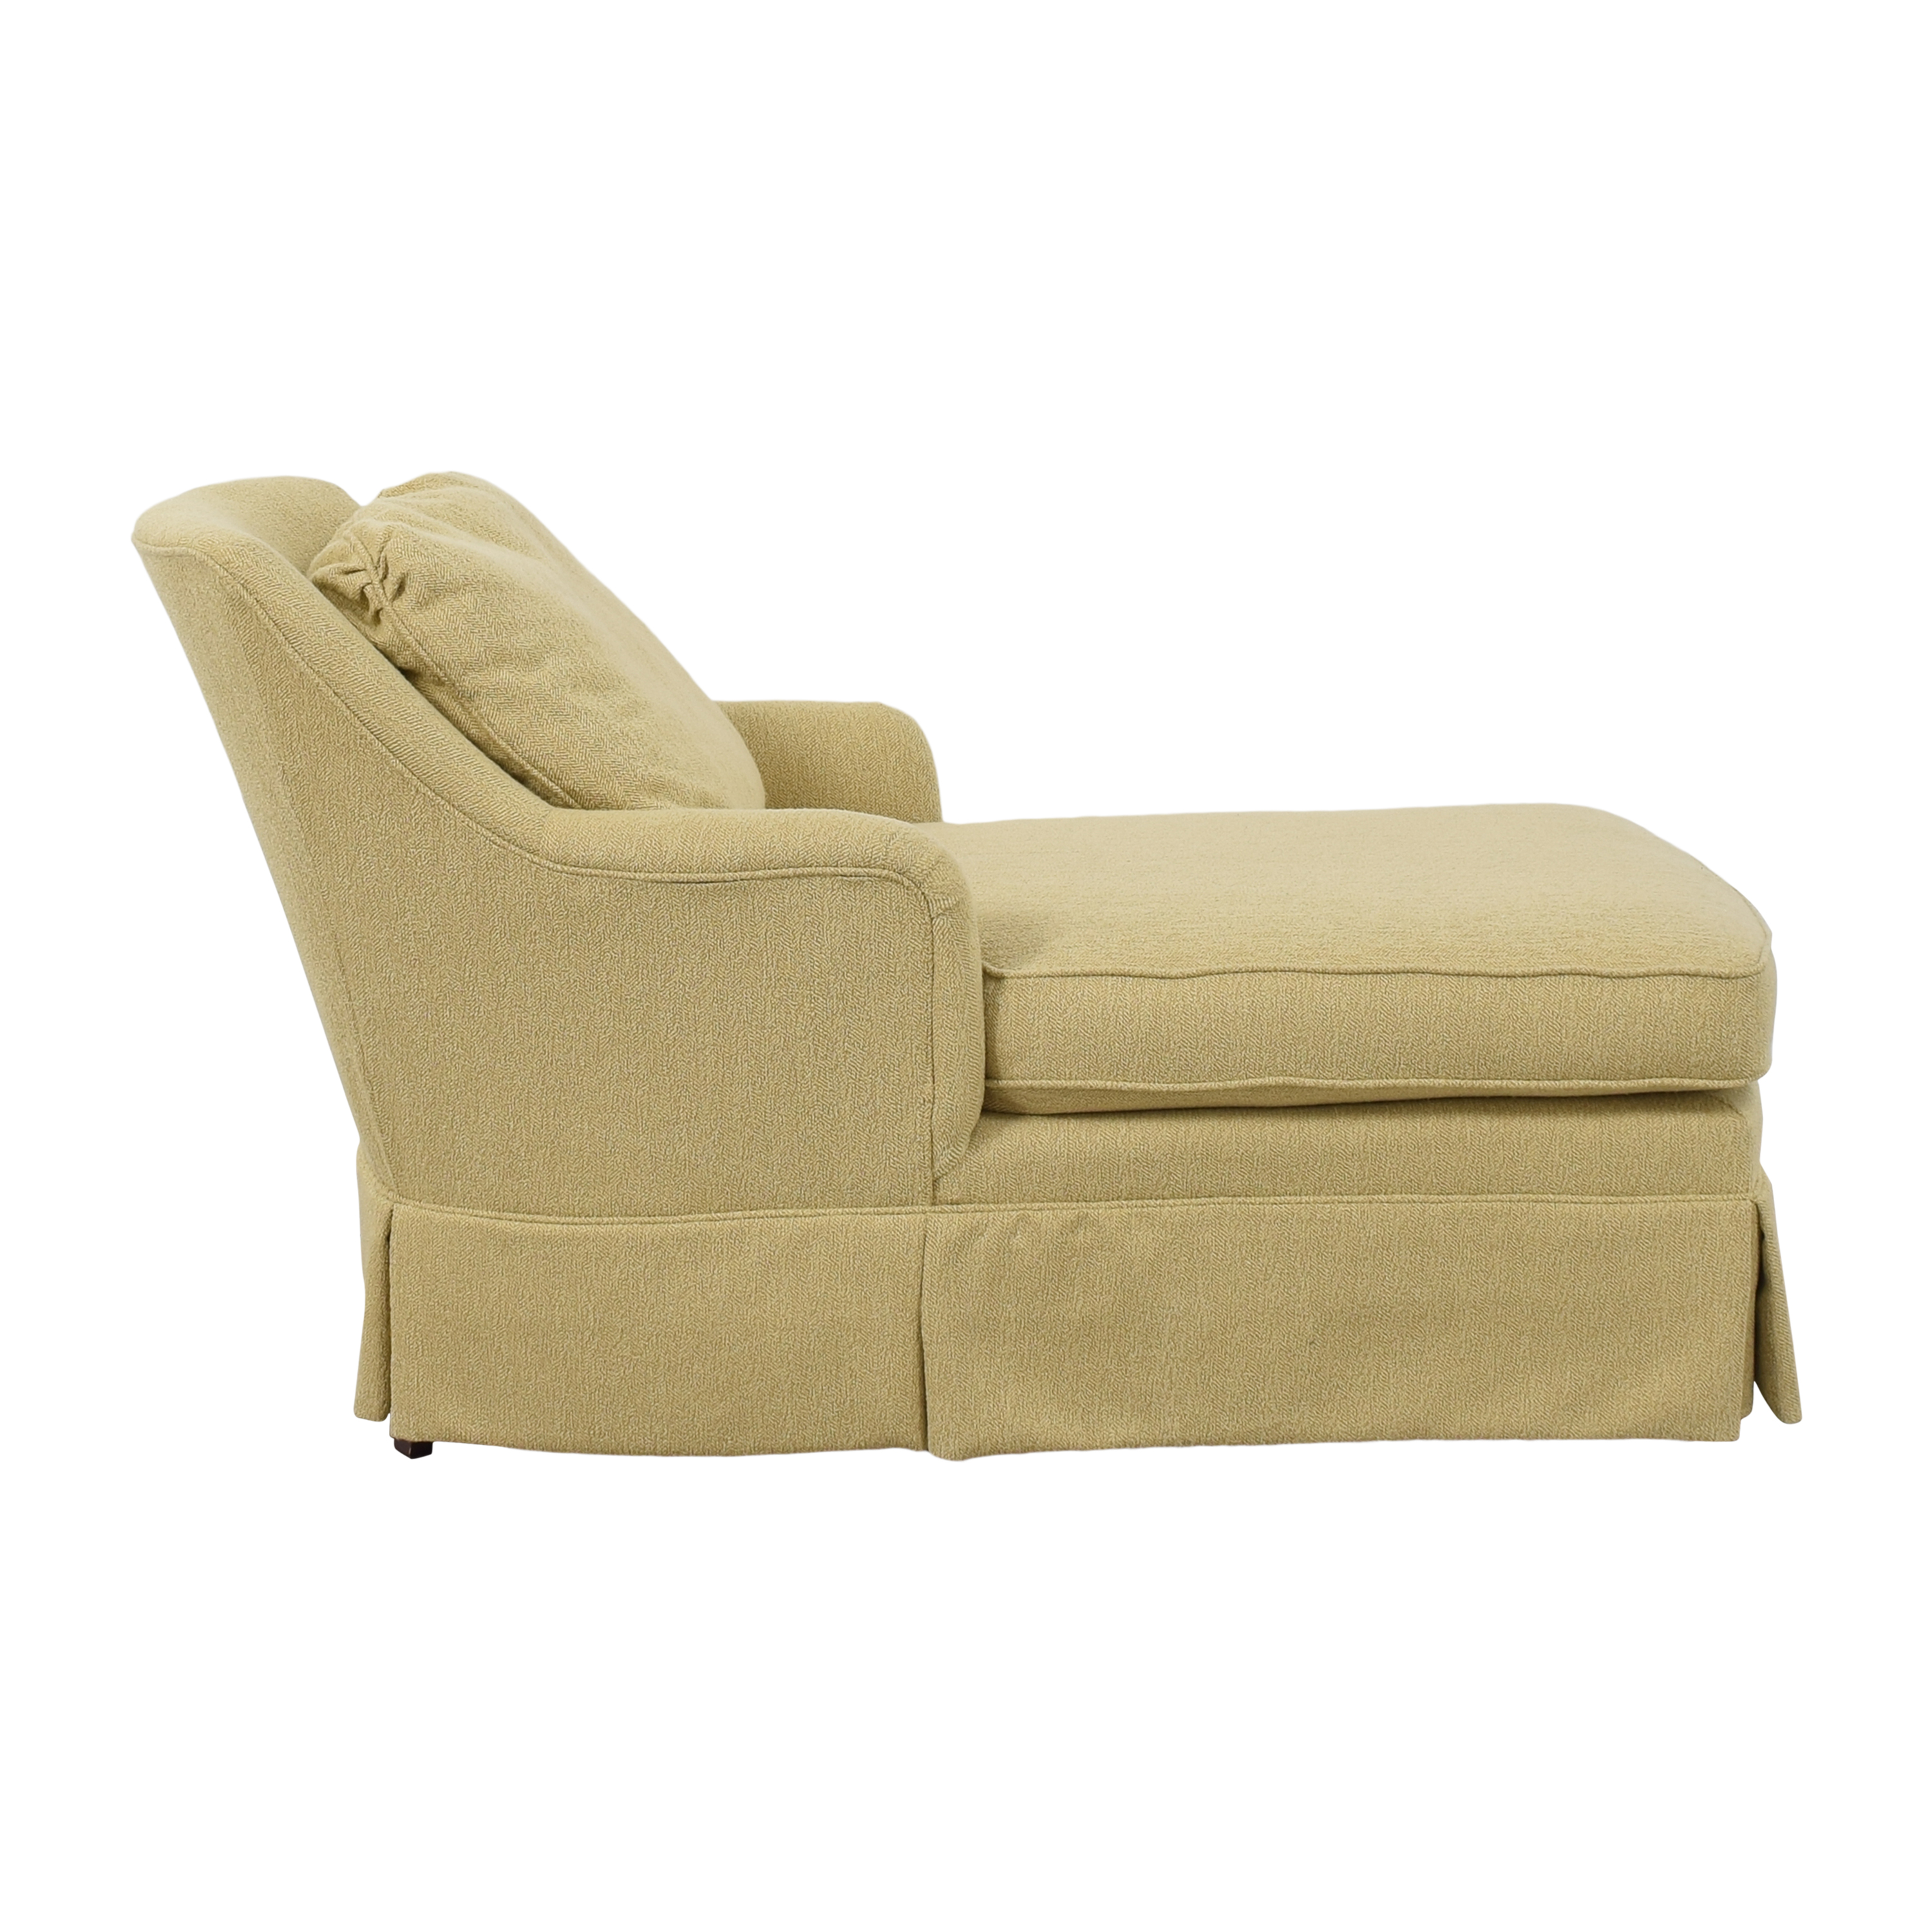 Fairfield Chair Company Fairfield Chair Company Chaise Lounge price